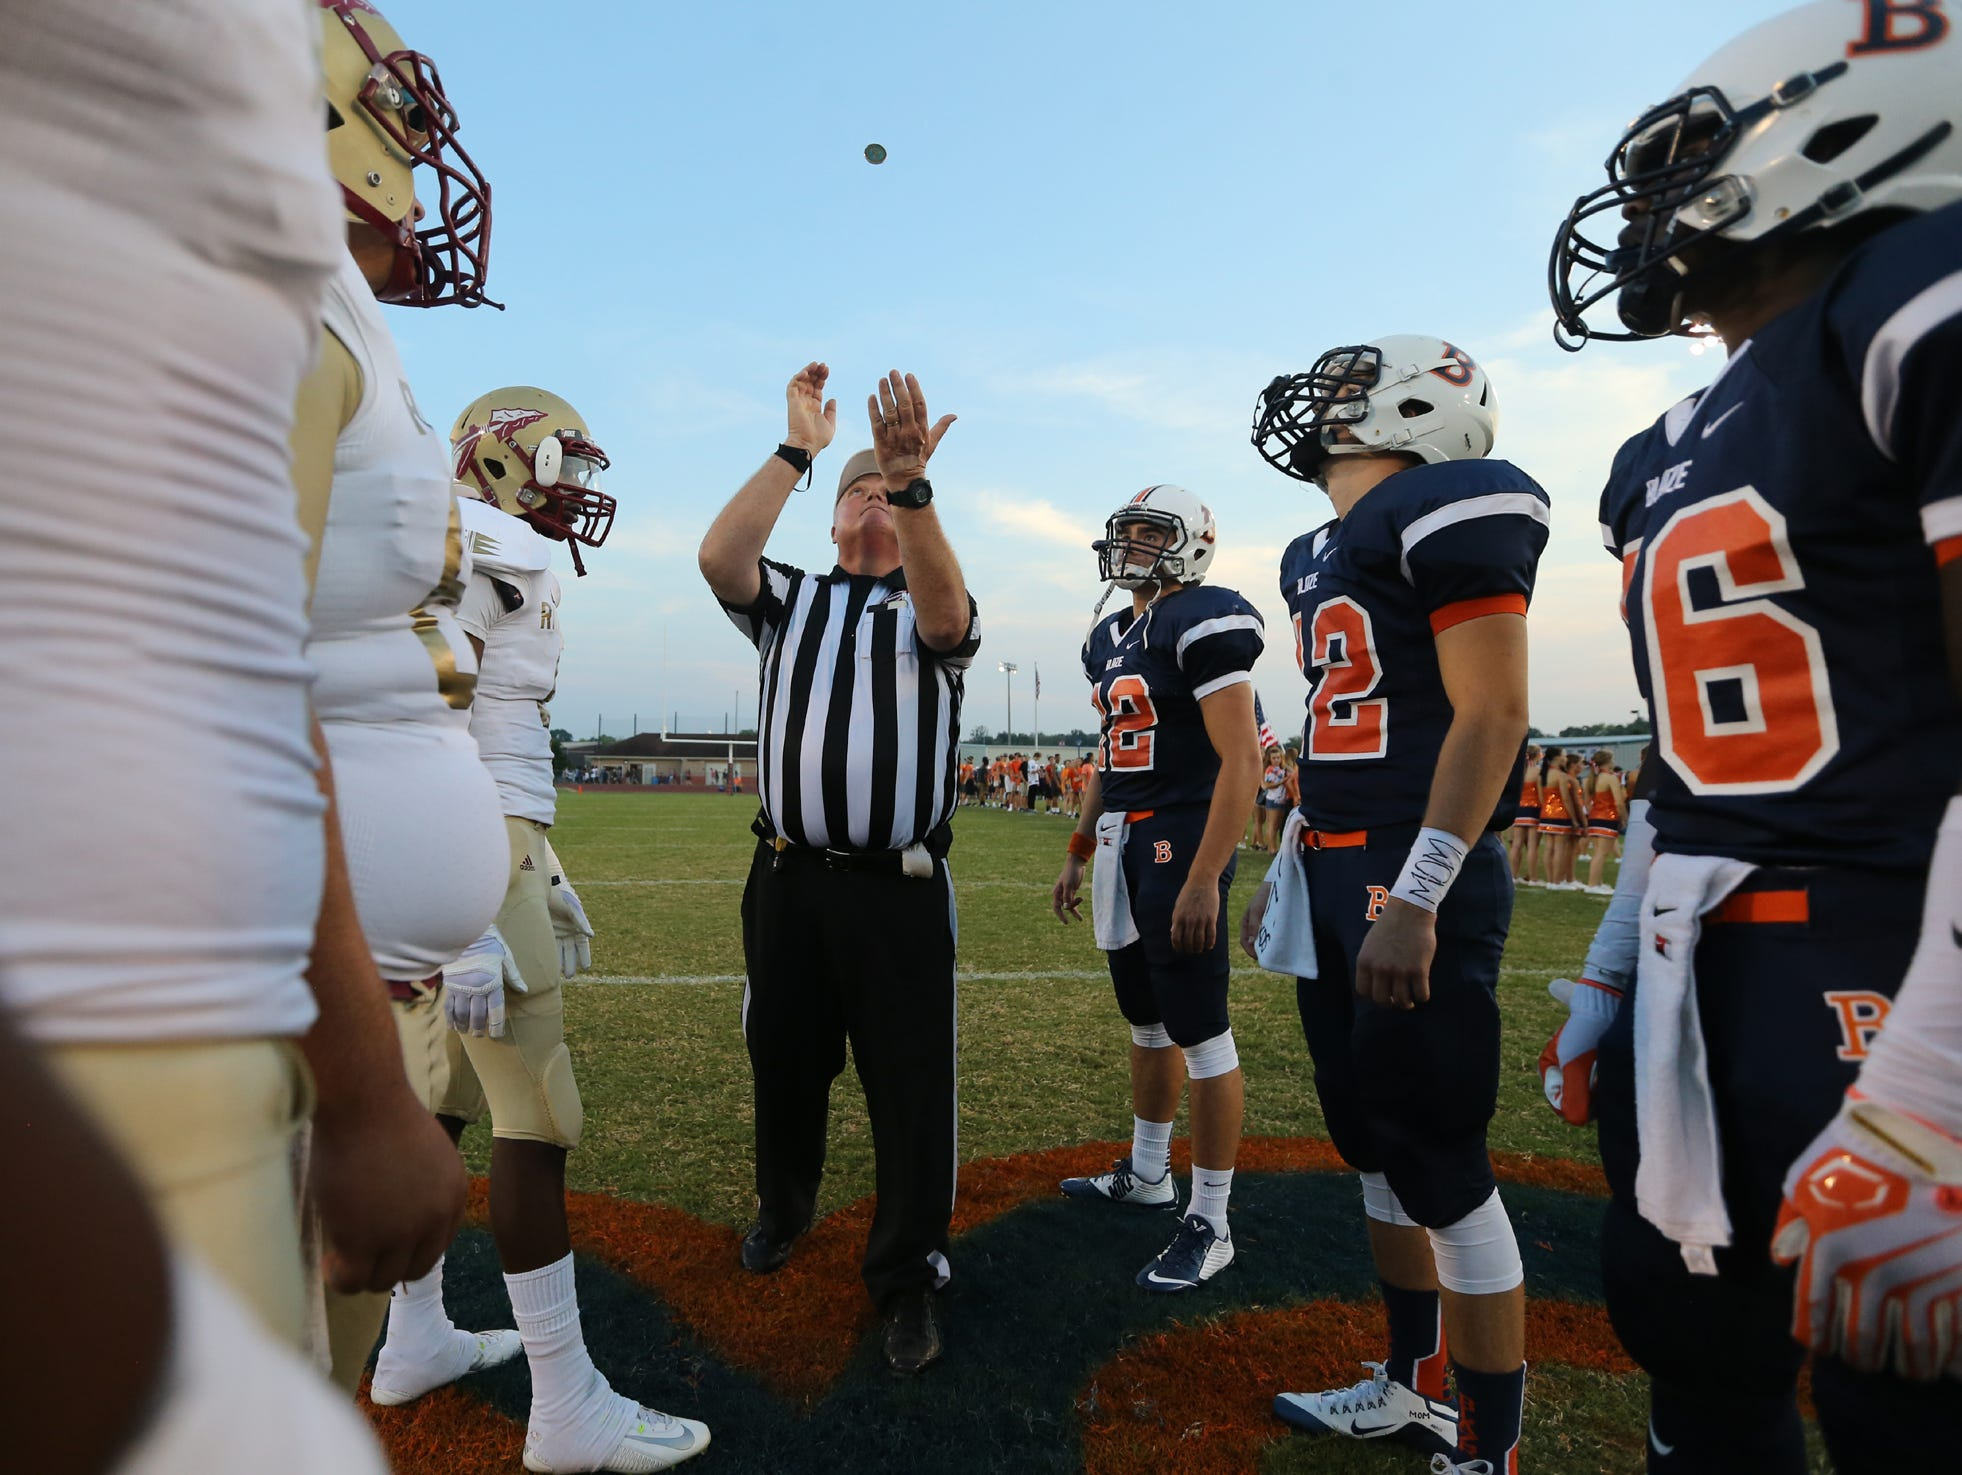 Referee Bobby Garrison flips the coin before the start of the Blackman vs. Riverdale game, at Blackman, on Friday. Blackman player Colin Simpson (42) has Mom written on his wrist to honor his mother who died earlier this week.